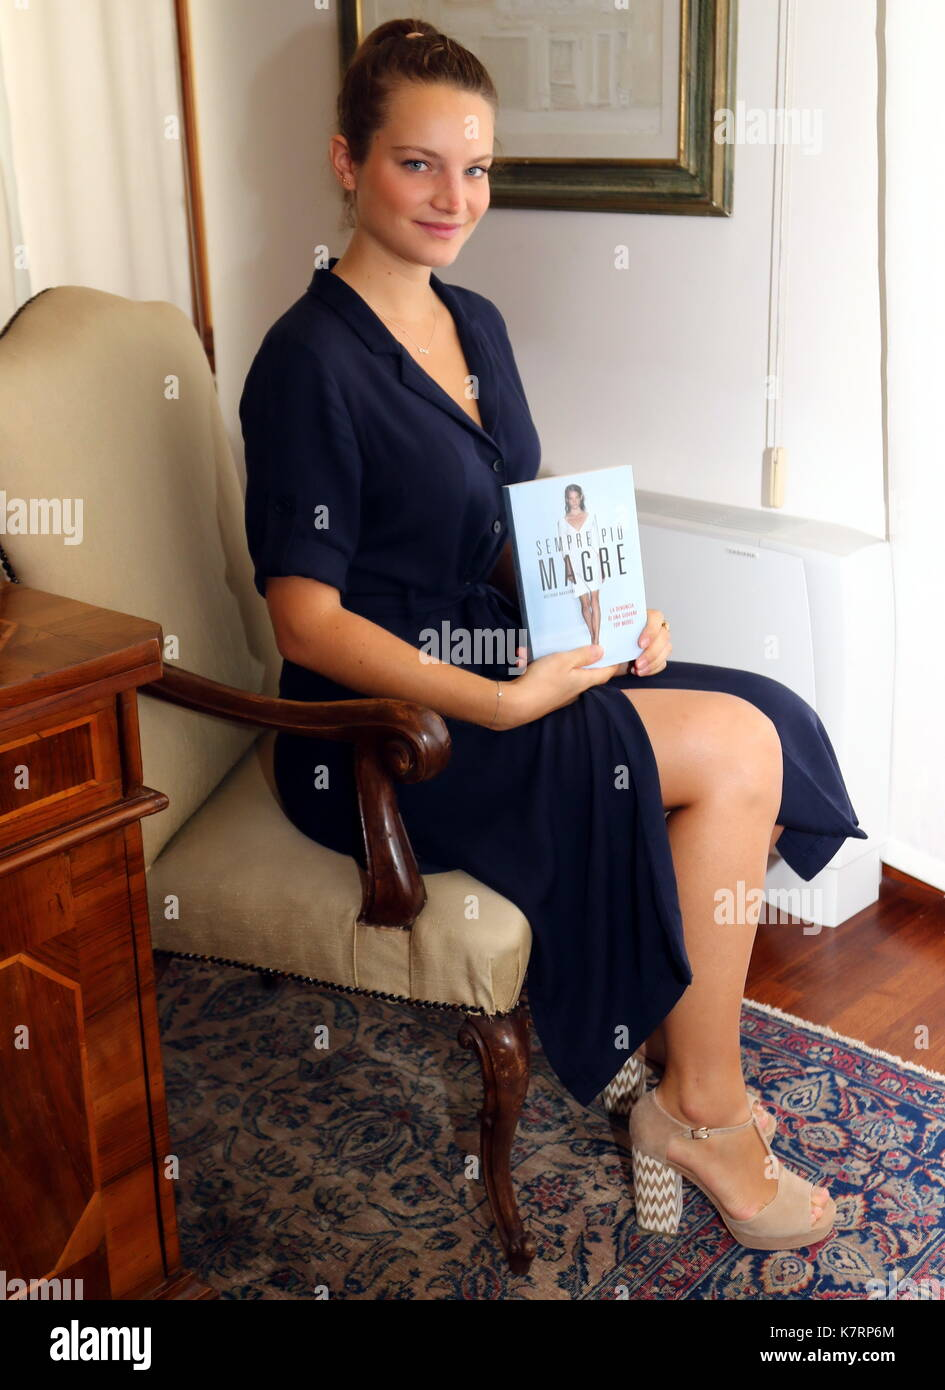 ITALY, Pordenone: French ex-model Victoire Dauxerre is seen during a literary event Pordenonelegge.it XVII BookFest with authors from 13 to 17 September at Pordenone on 17th September, 2017. - Stock Image